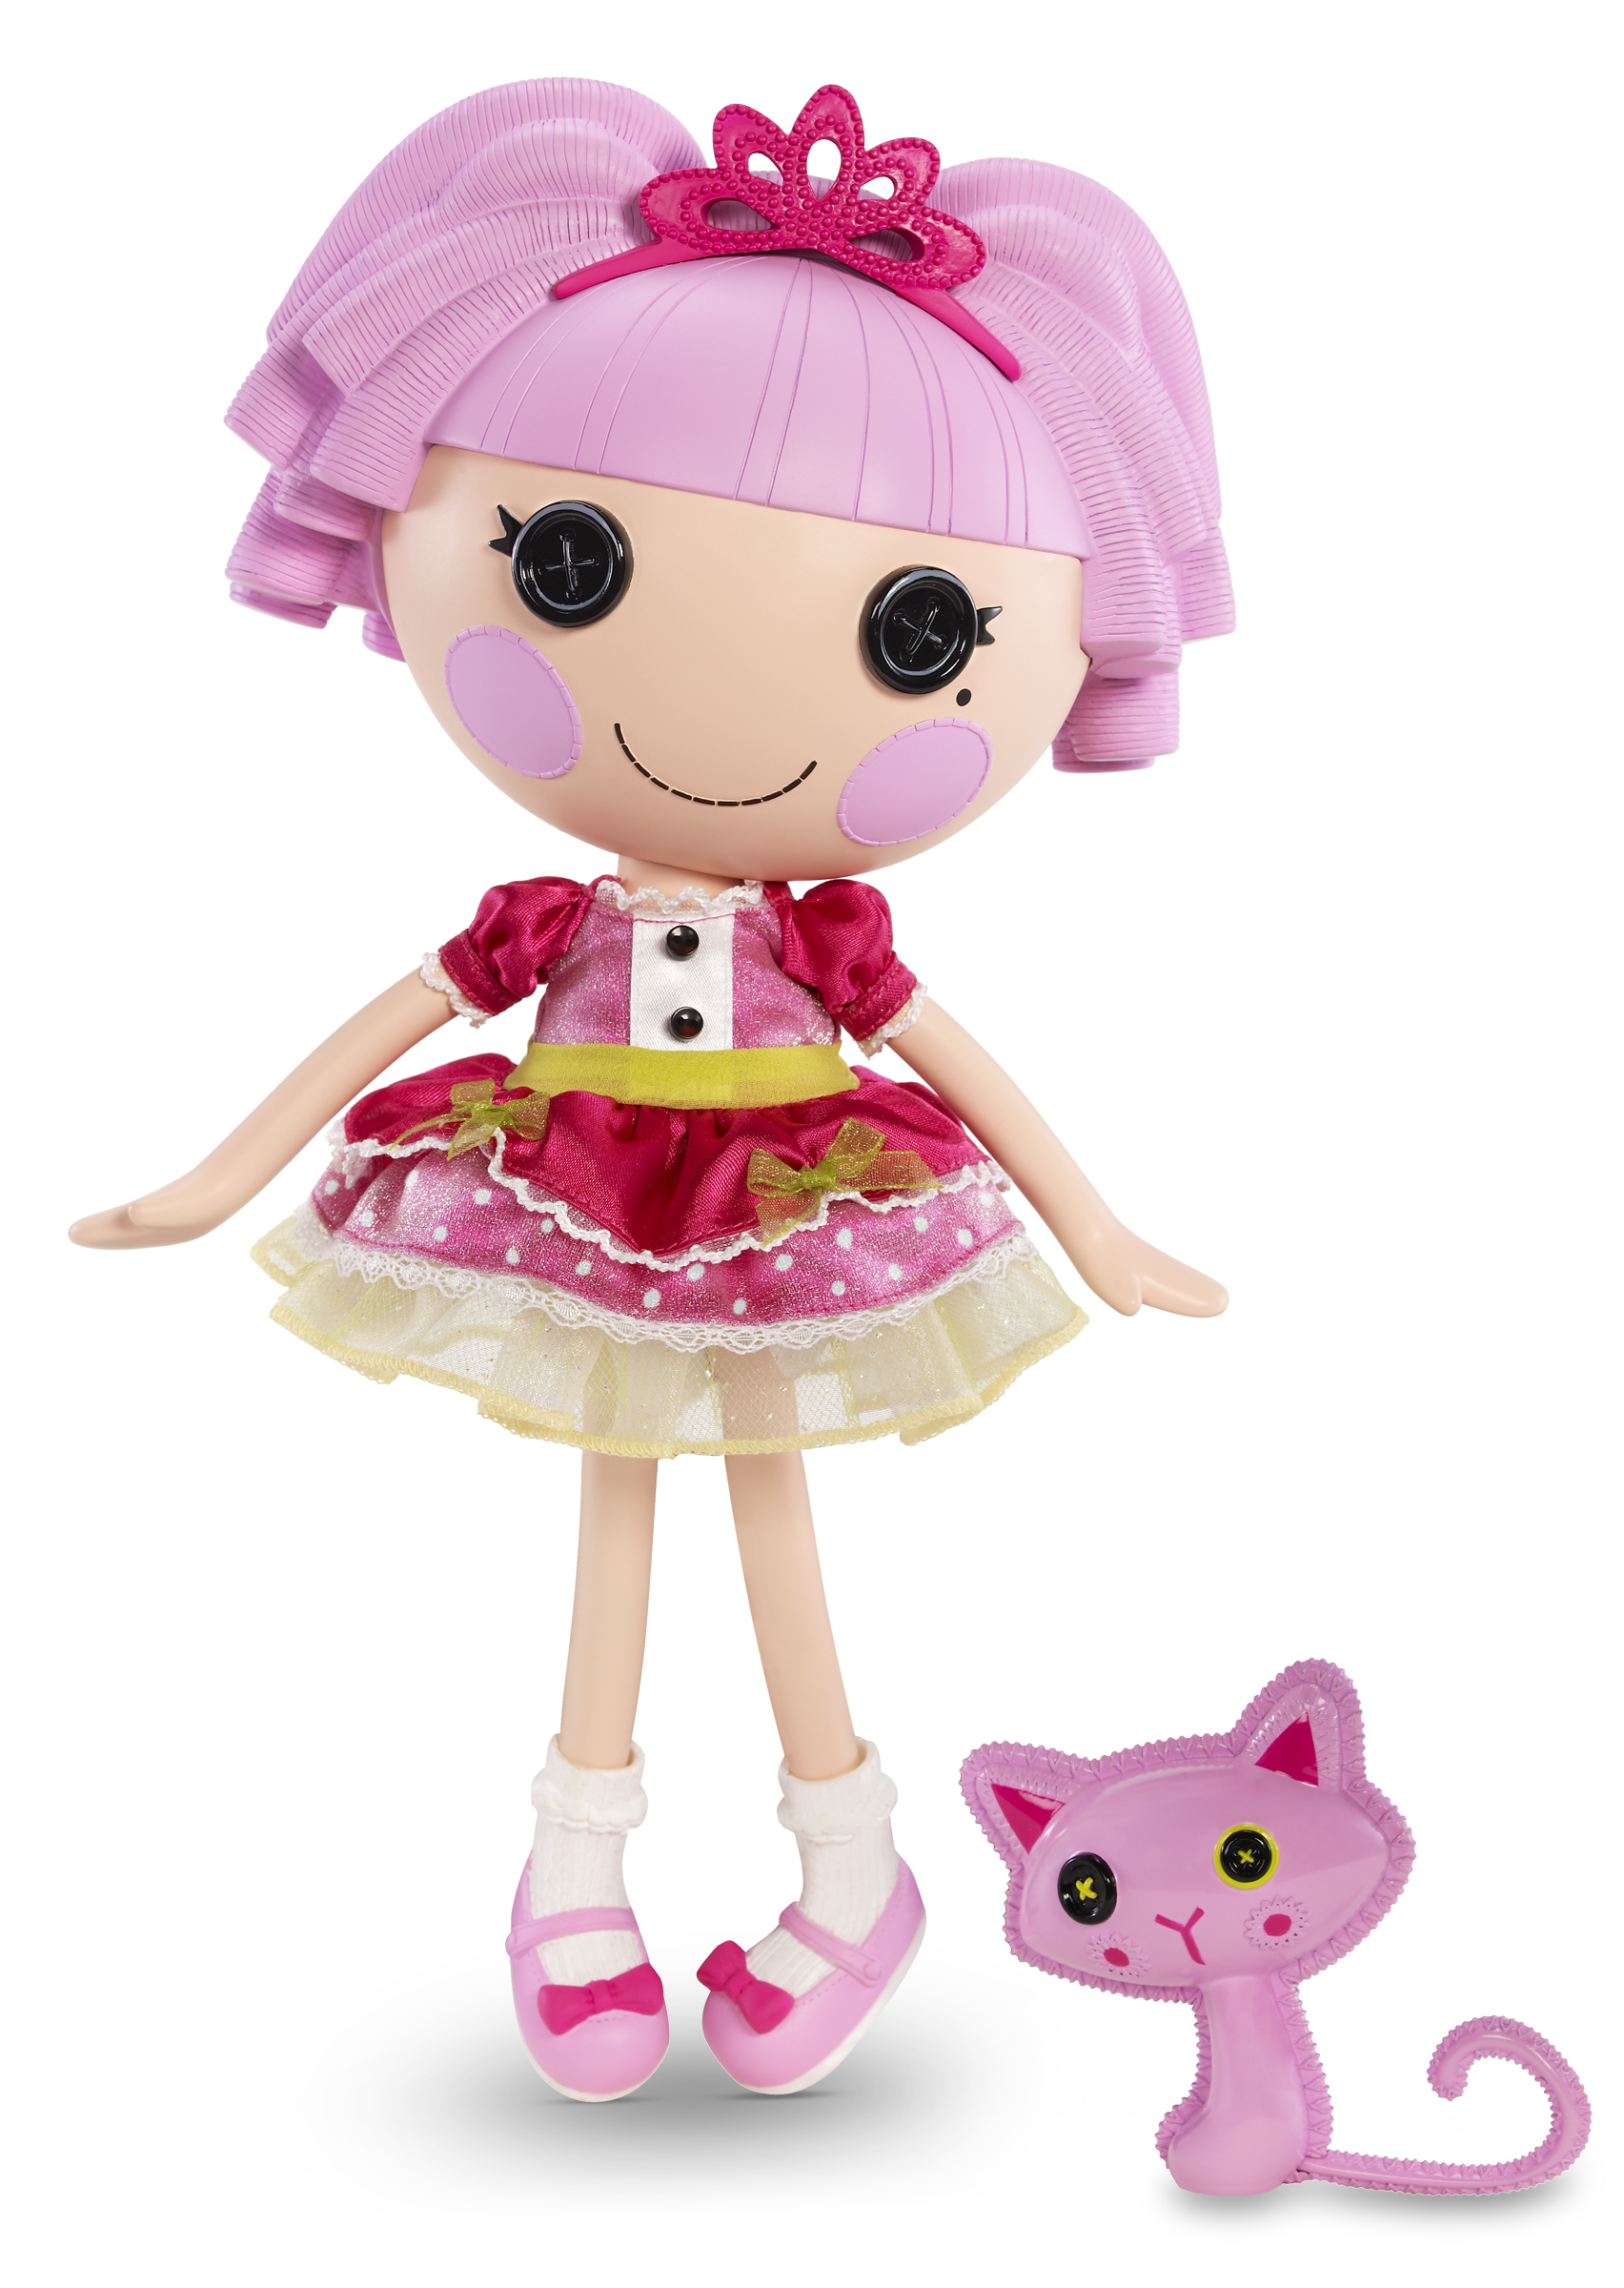 Lalaloopsy images Lalaloopsy dolls HD wallpaper and background photos ...